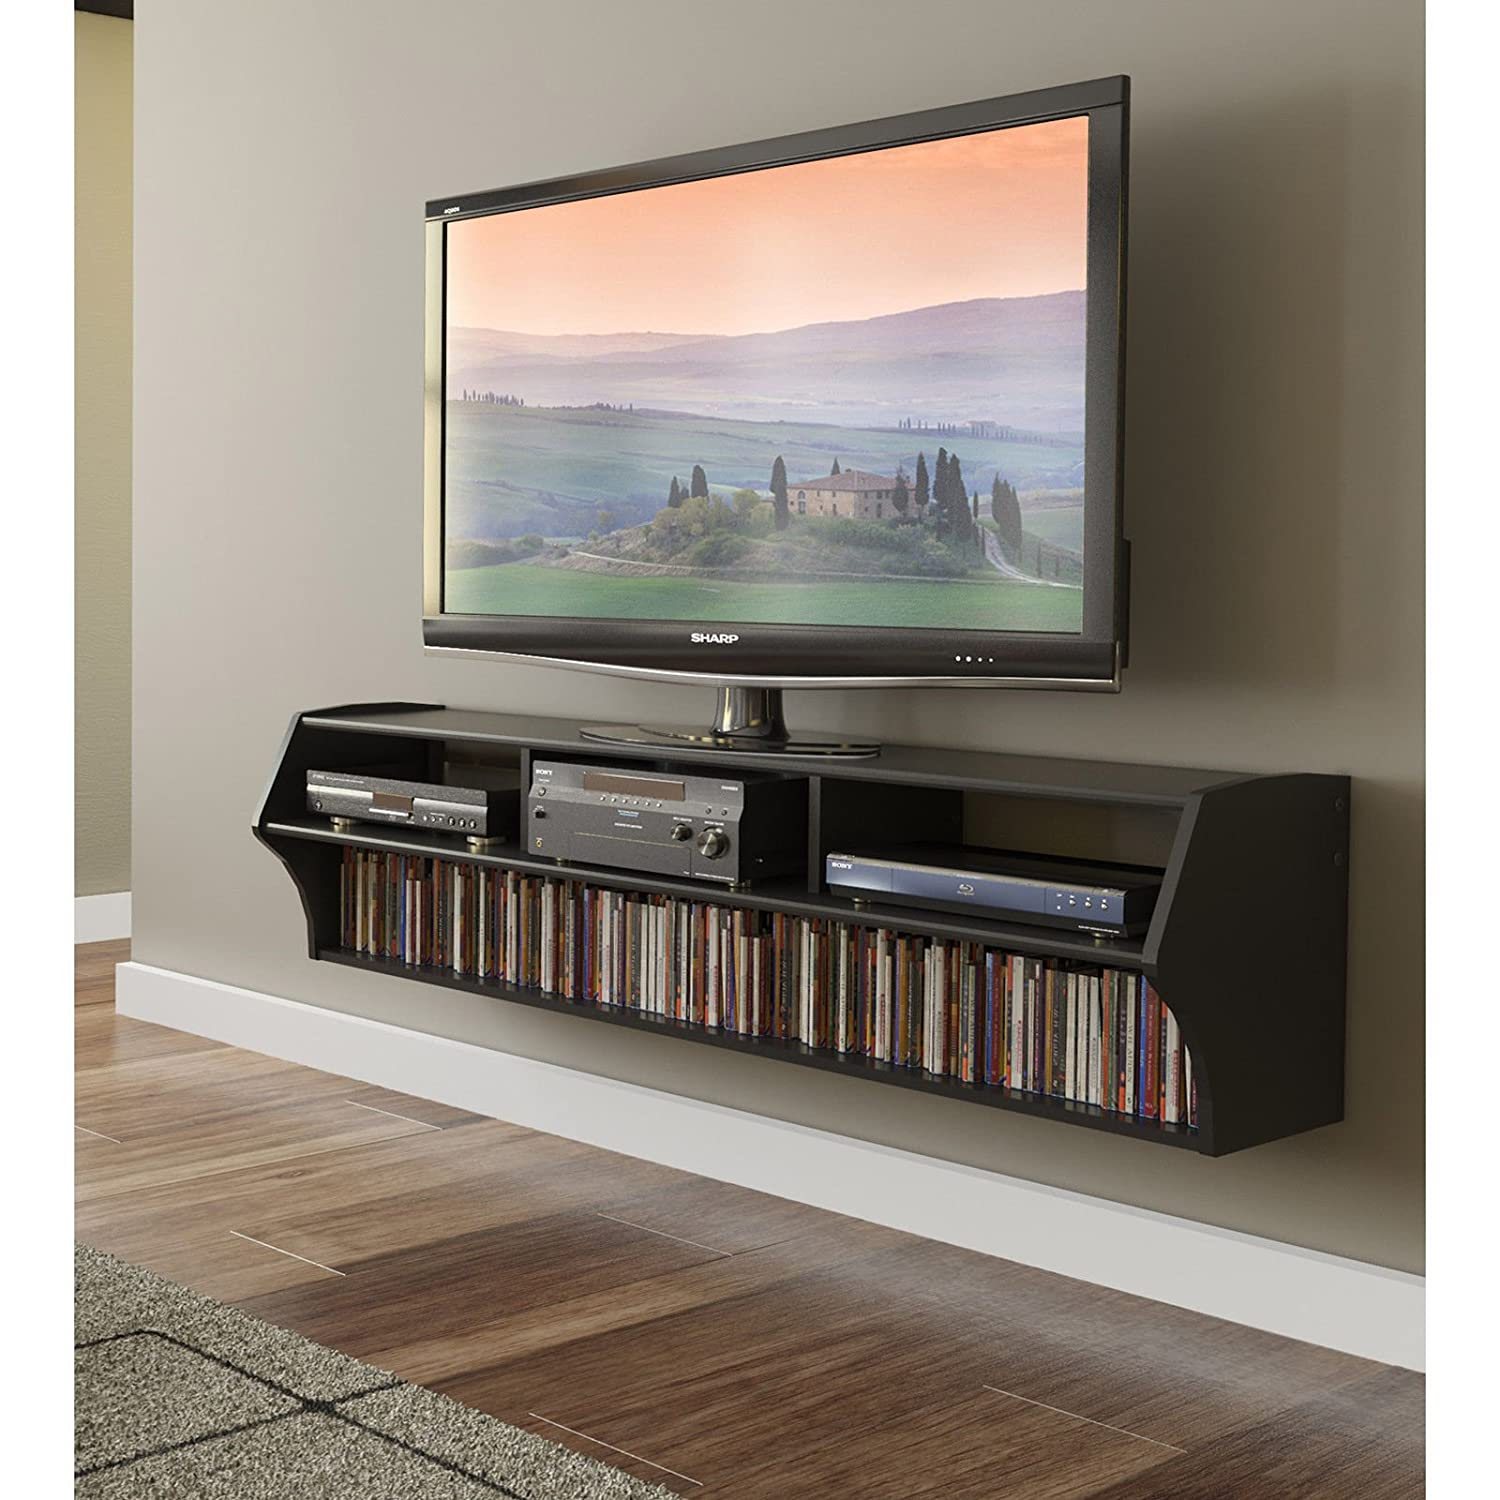 Metro Shop Broadway Black Altus Plus 58-inch Floating TV Stand